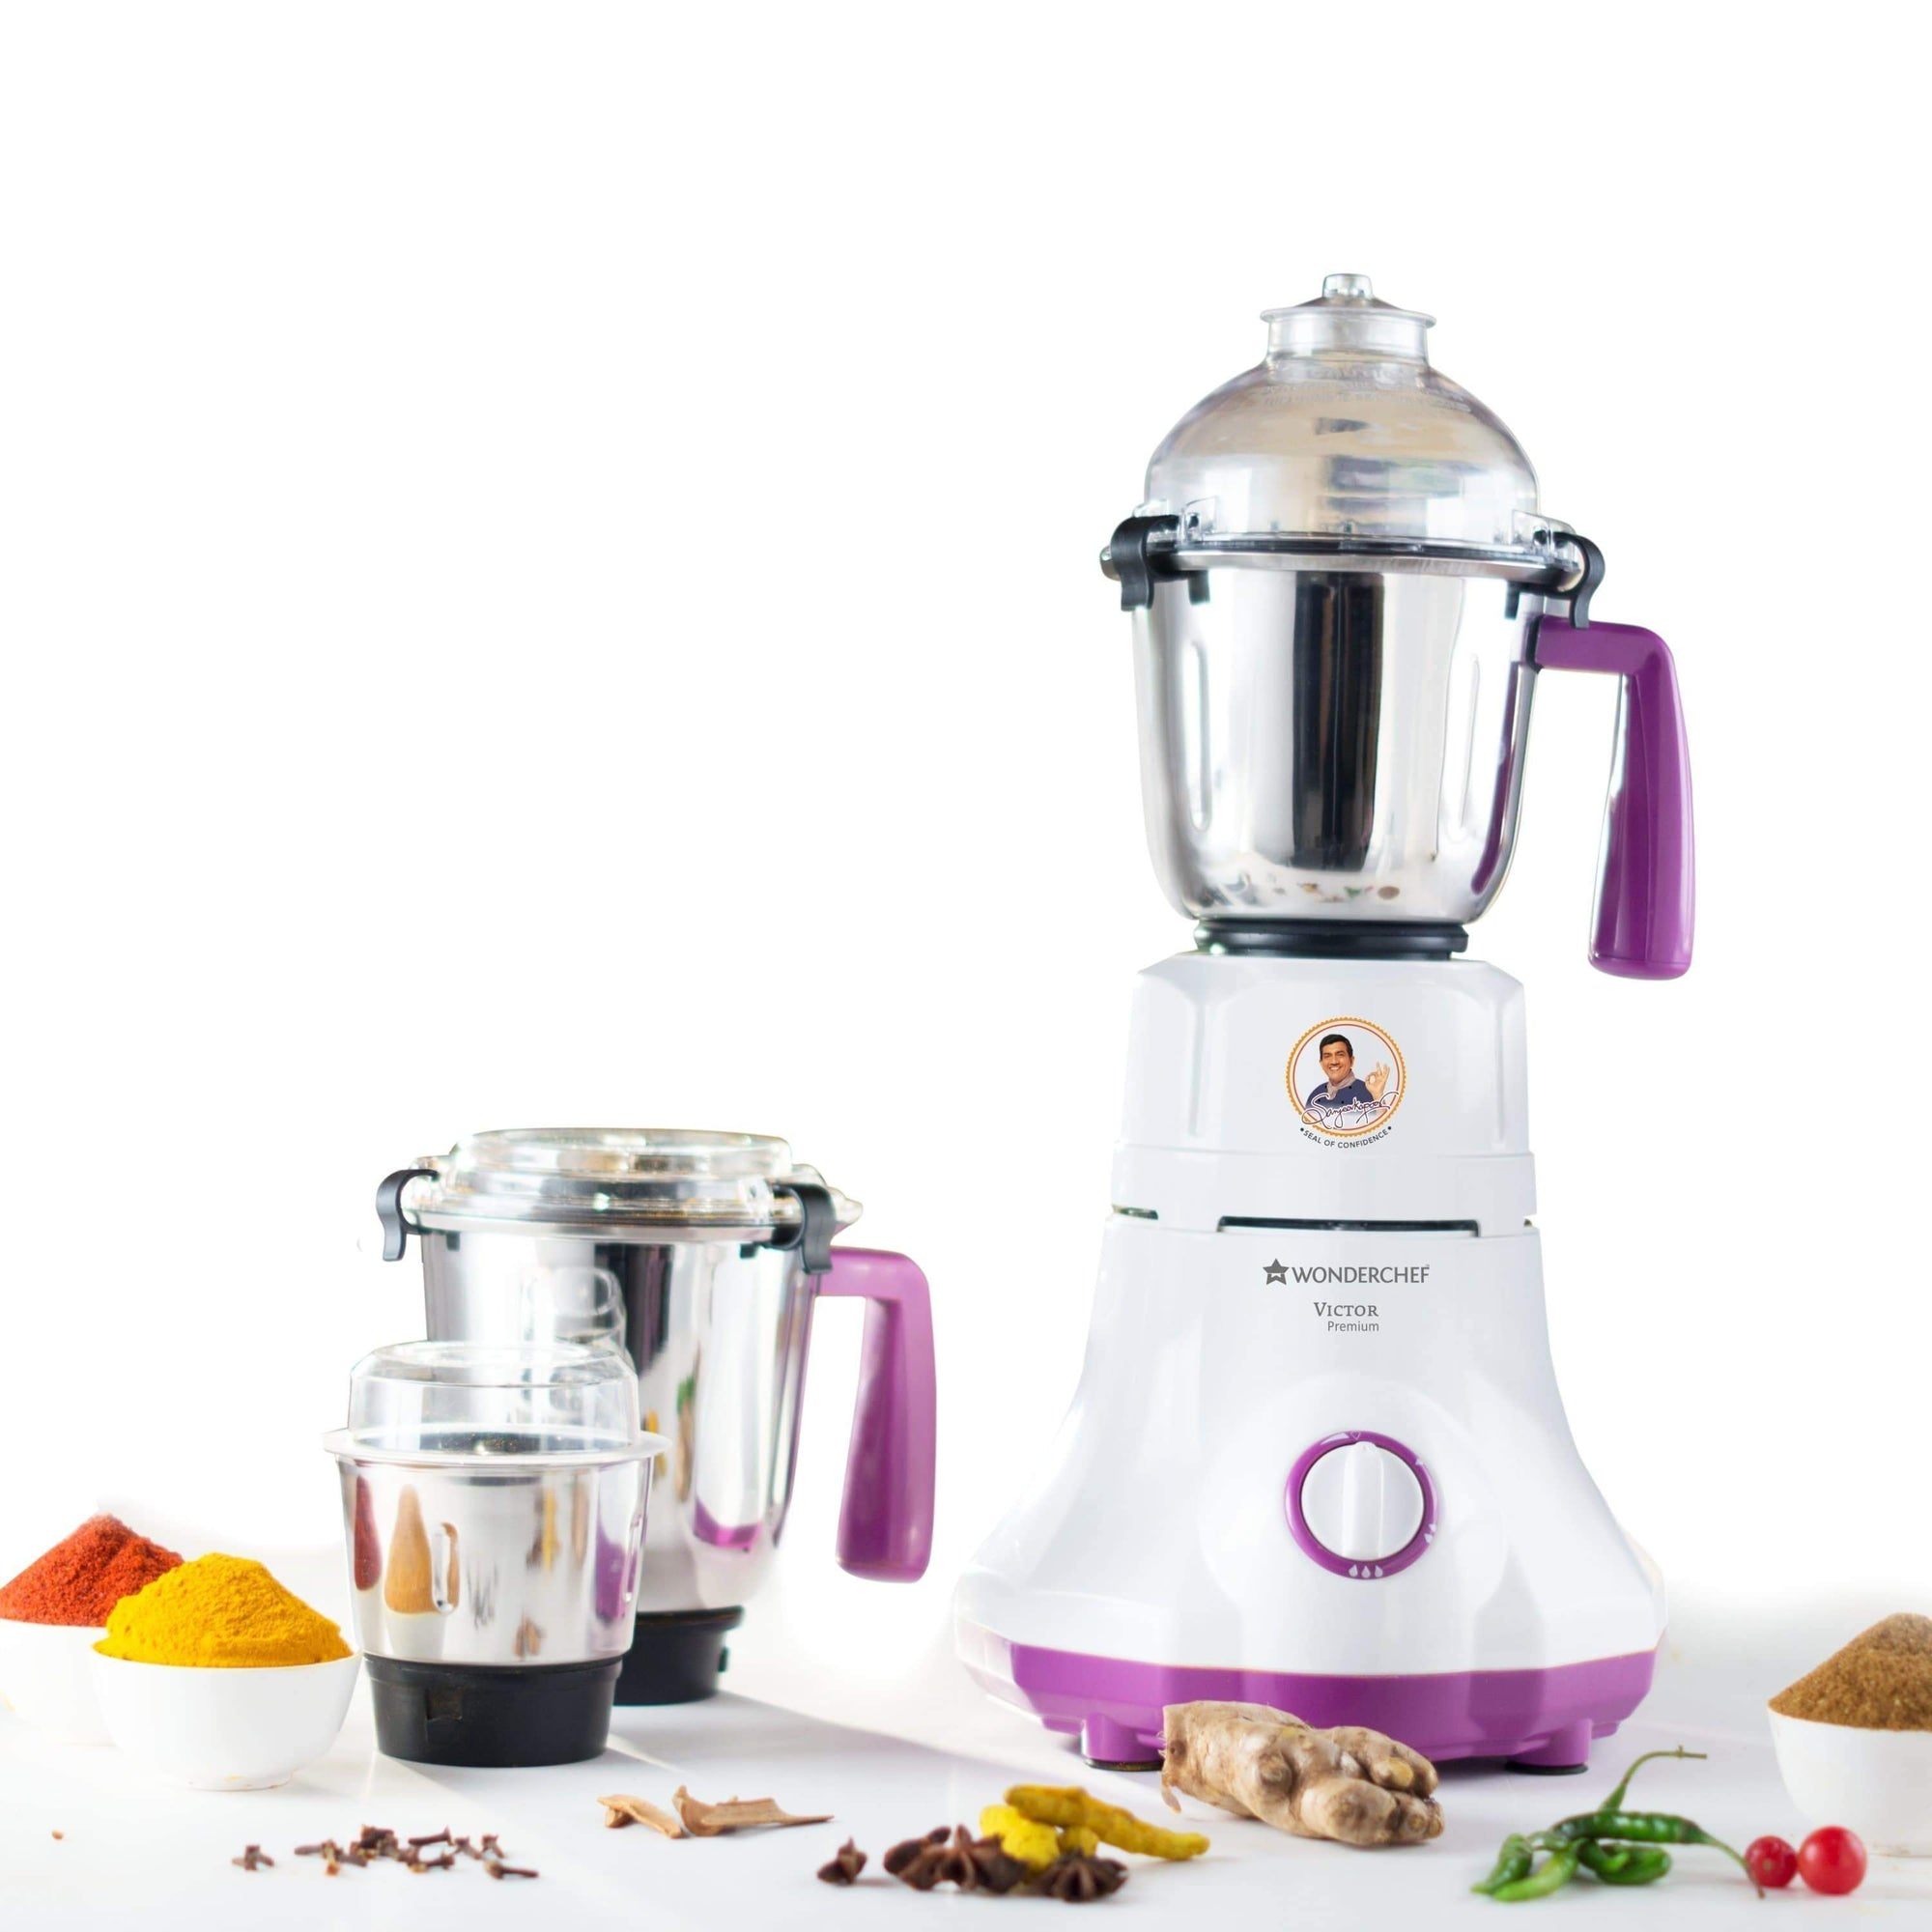 Wonderchef Appliances Wonderchef Victor Premium Mixer Grinder